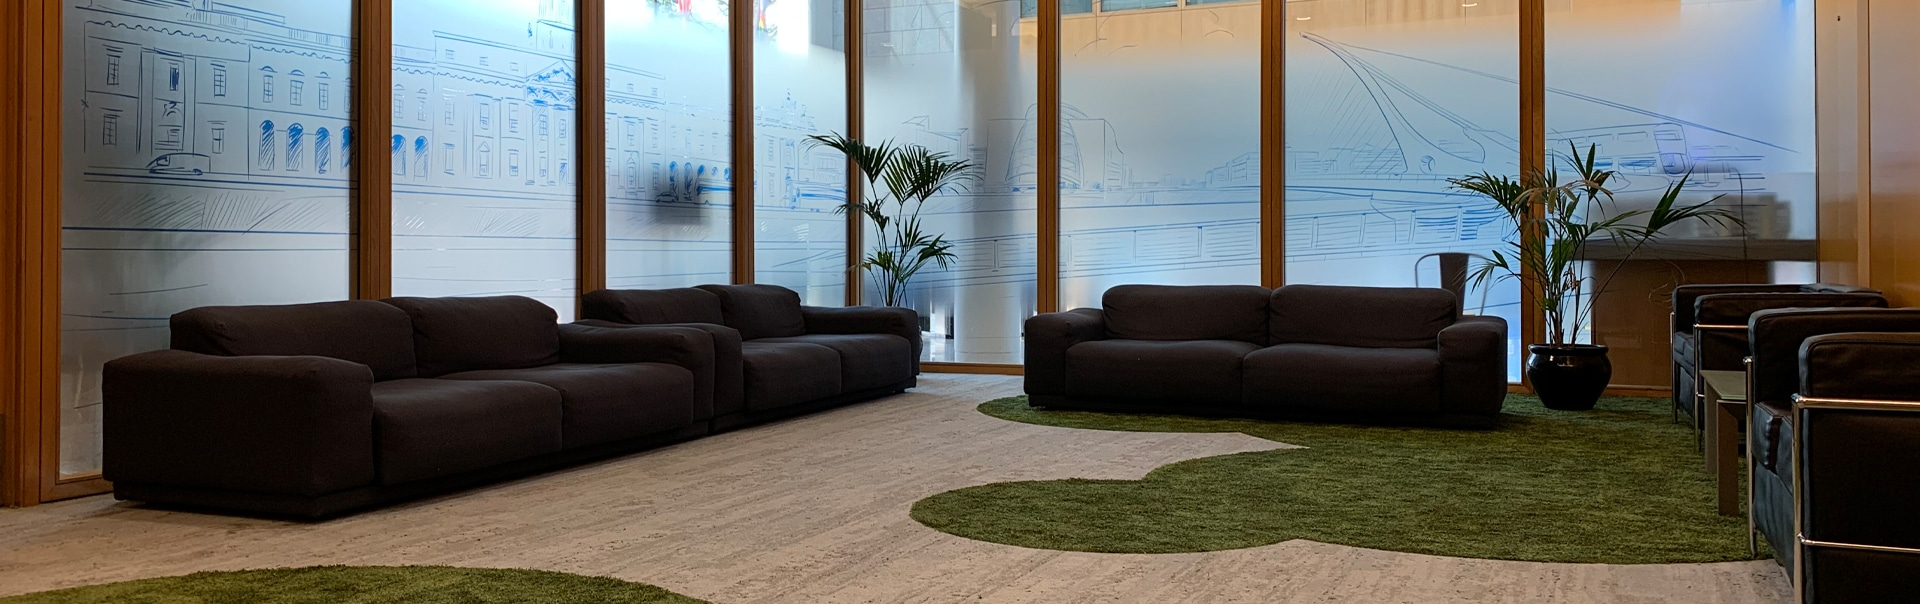 This corporate lounge is kept private with optically clear window manifestations